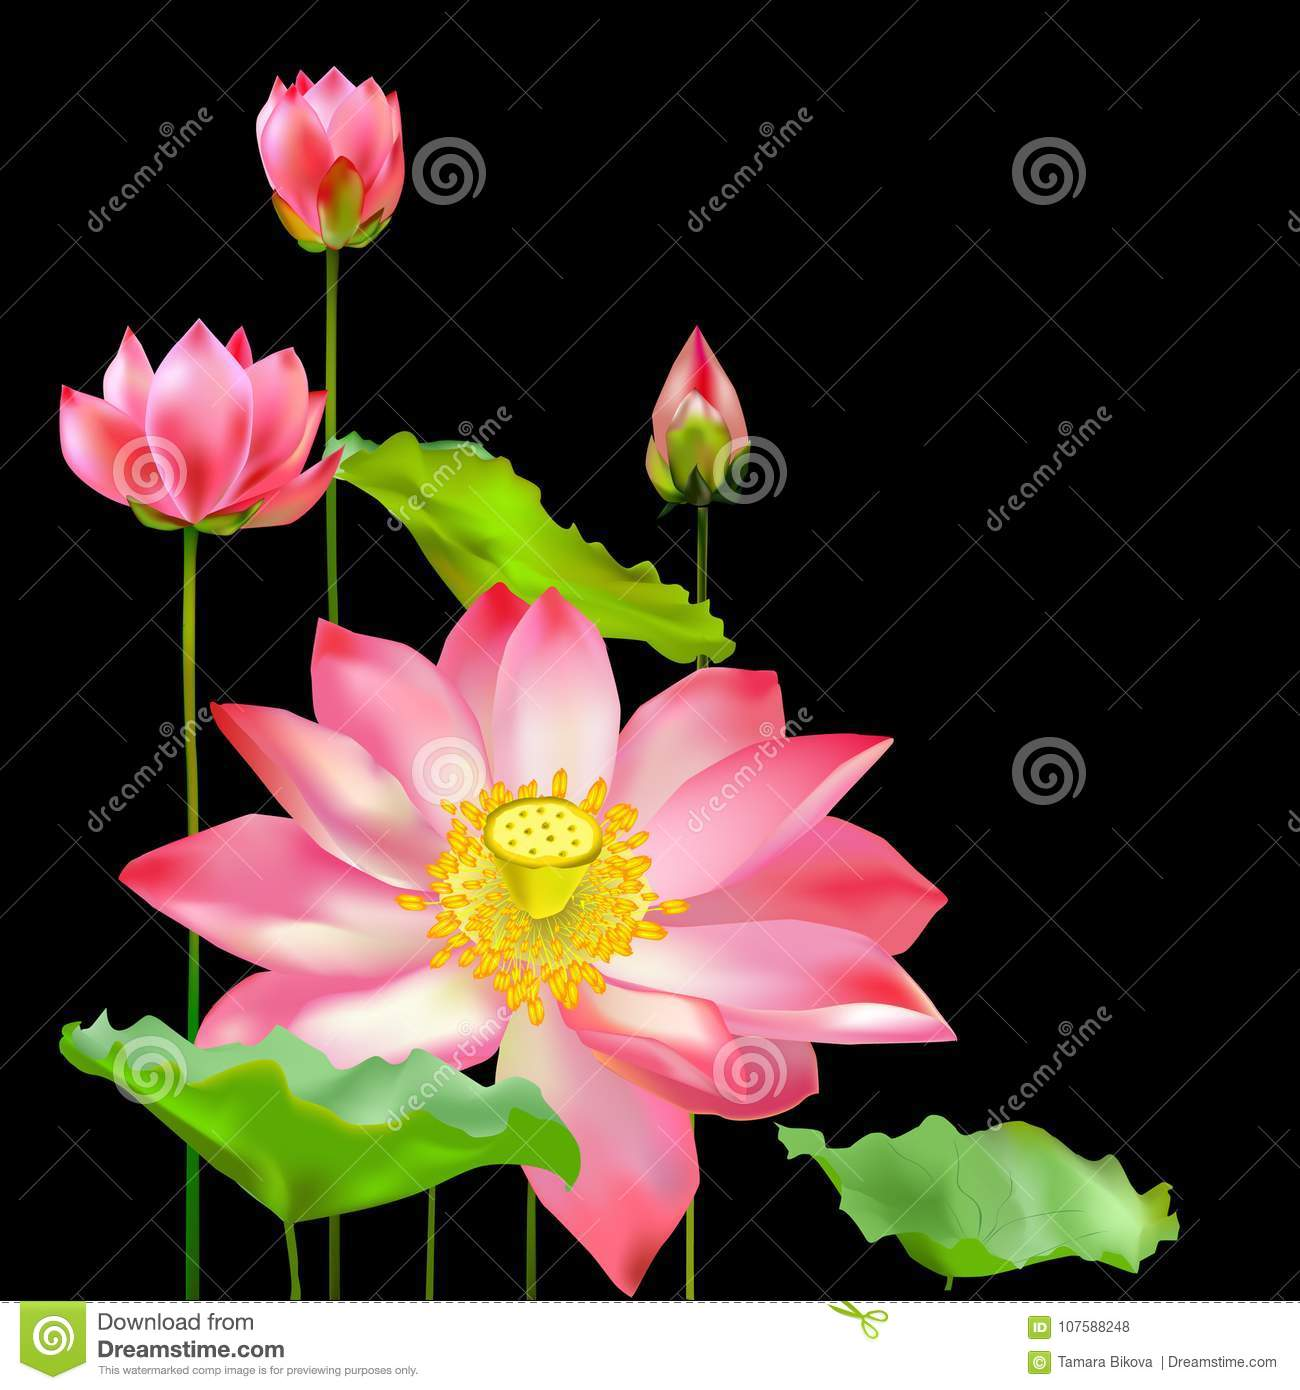 Flowers Buds And Leaves Of The Lotus Stock Illustration